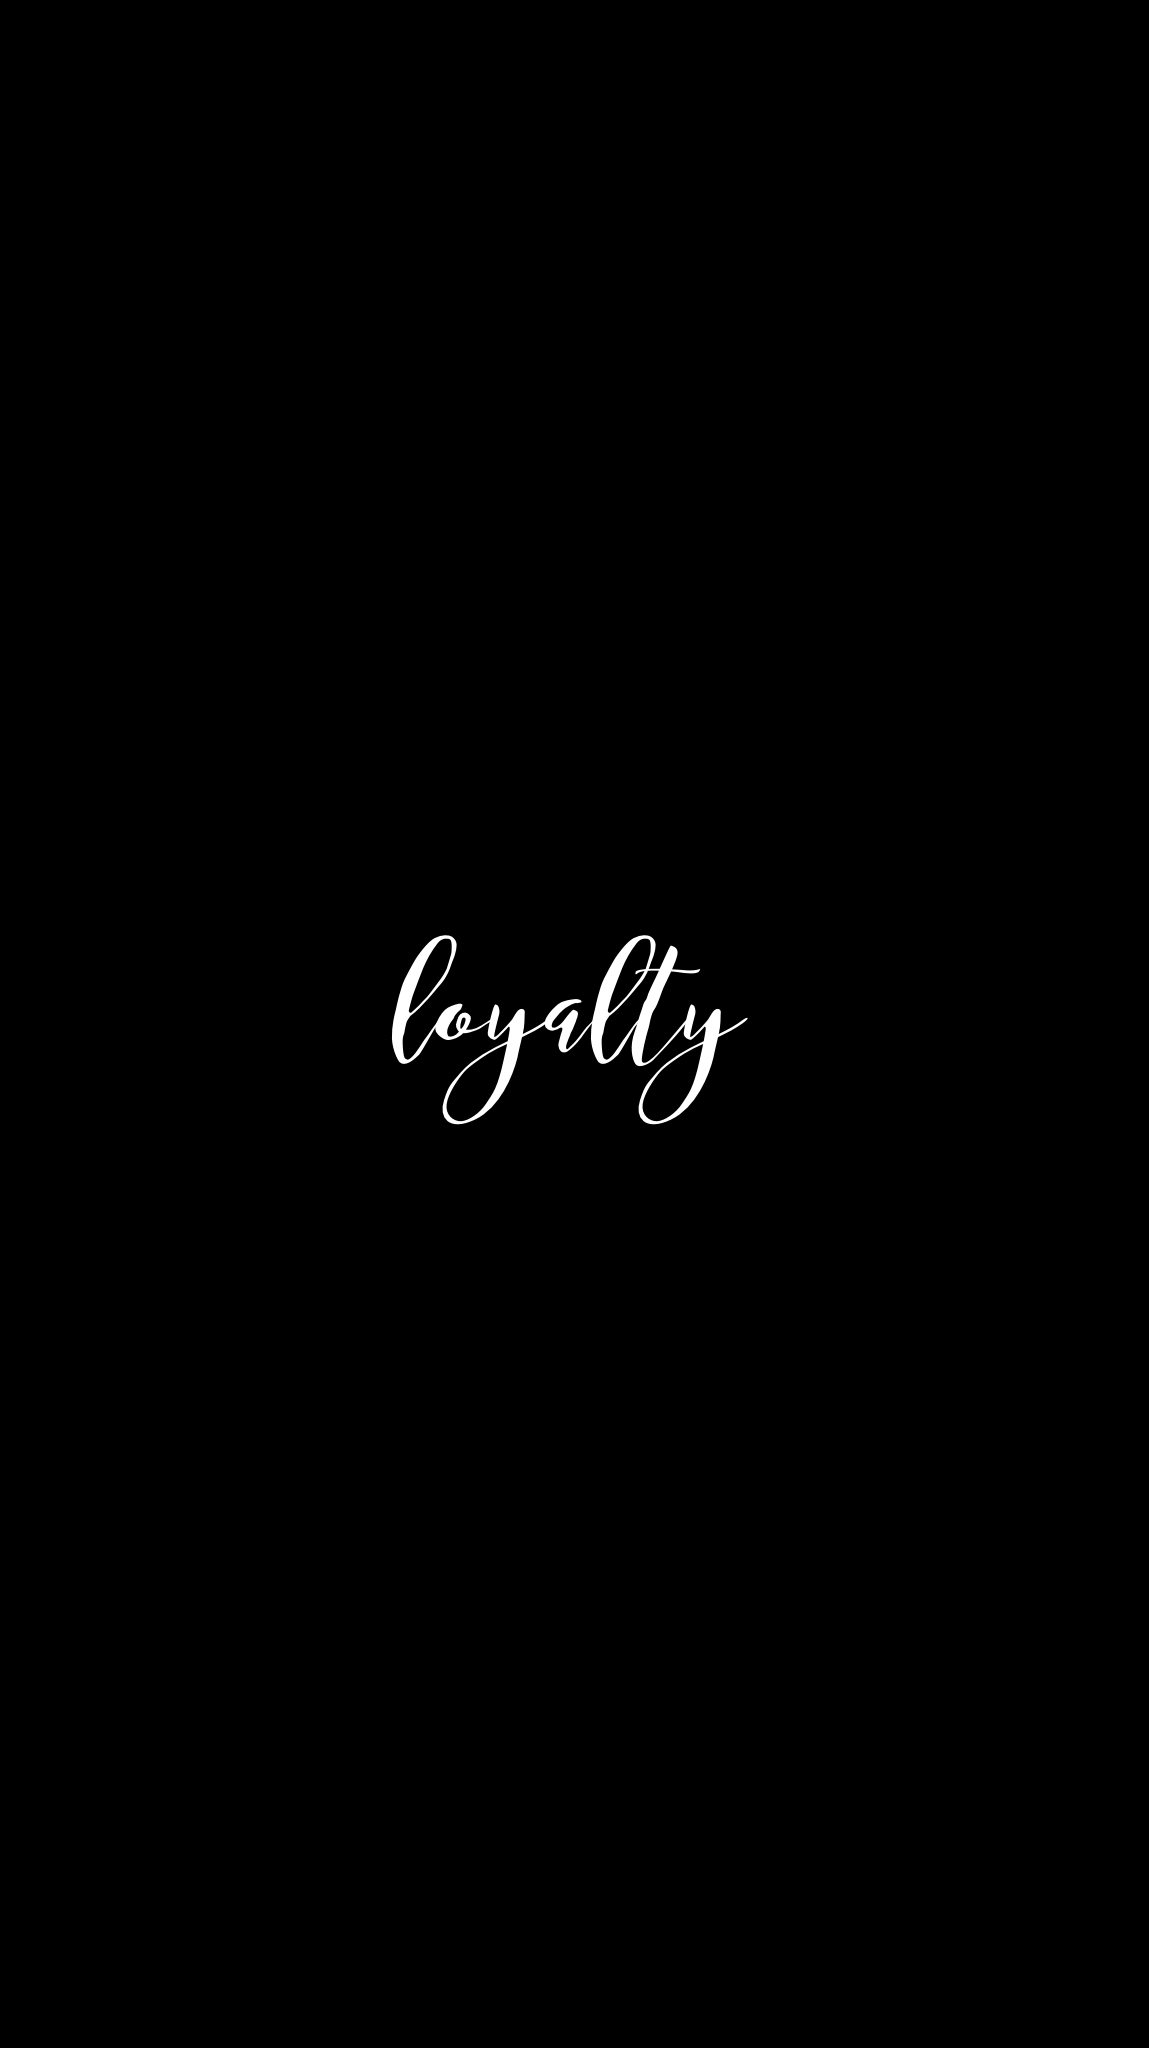 Loyalty Iphone Mobile Wallpaper Calligraphy Edit Calligraphy Wallpaper Black Background Quotes Black Wallpaper